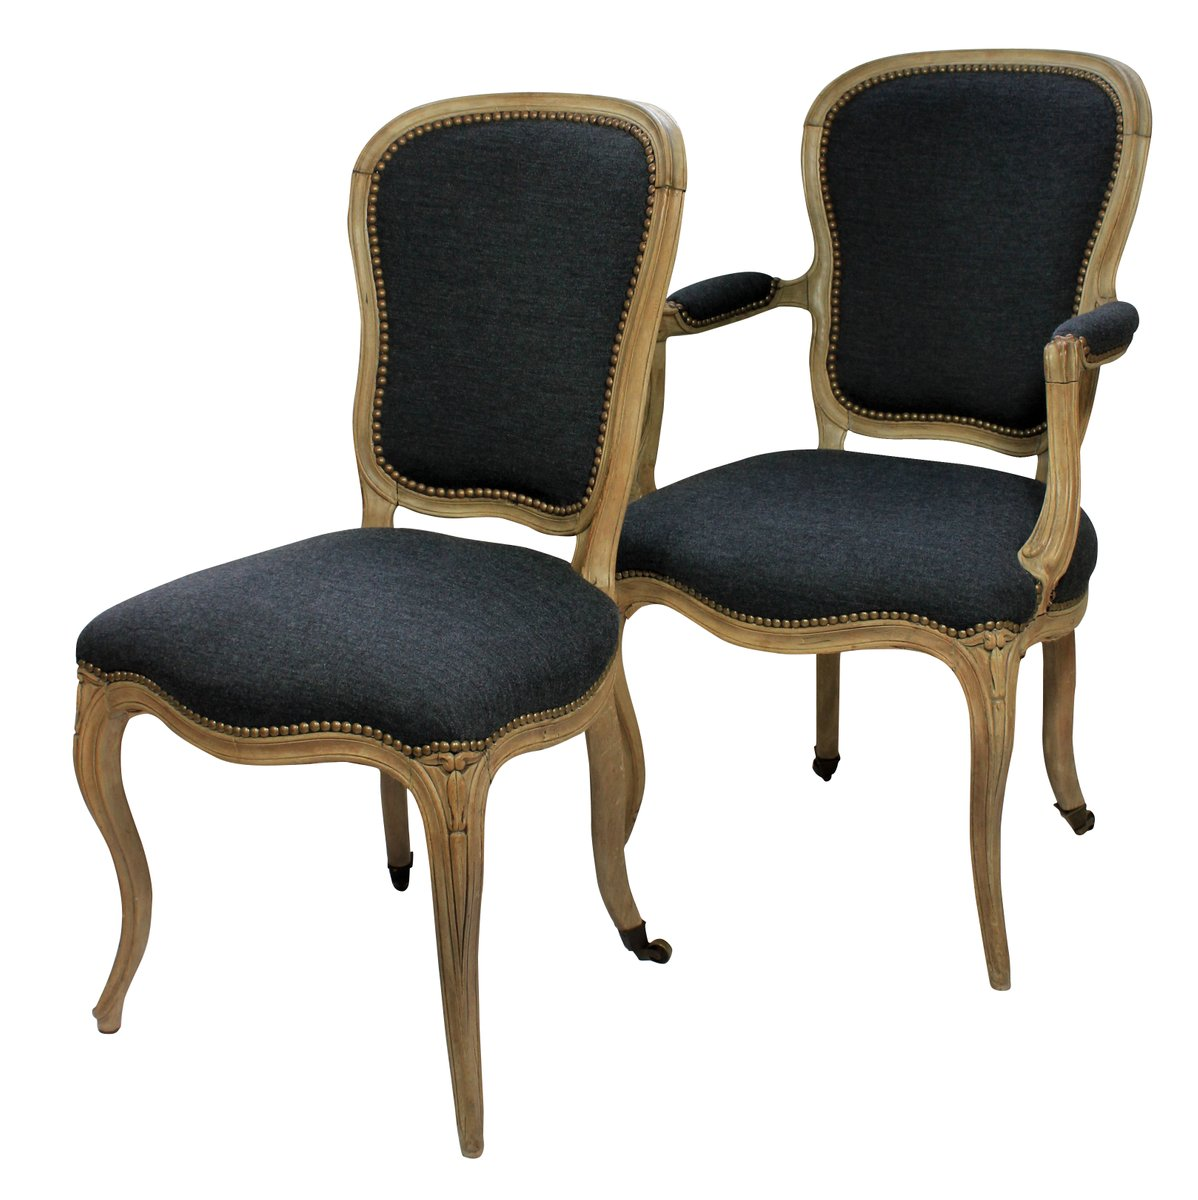 French Dining Chairs Antique French Dining Chairs 1780s Set Of 4 For Sale At